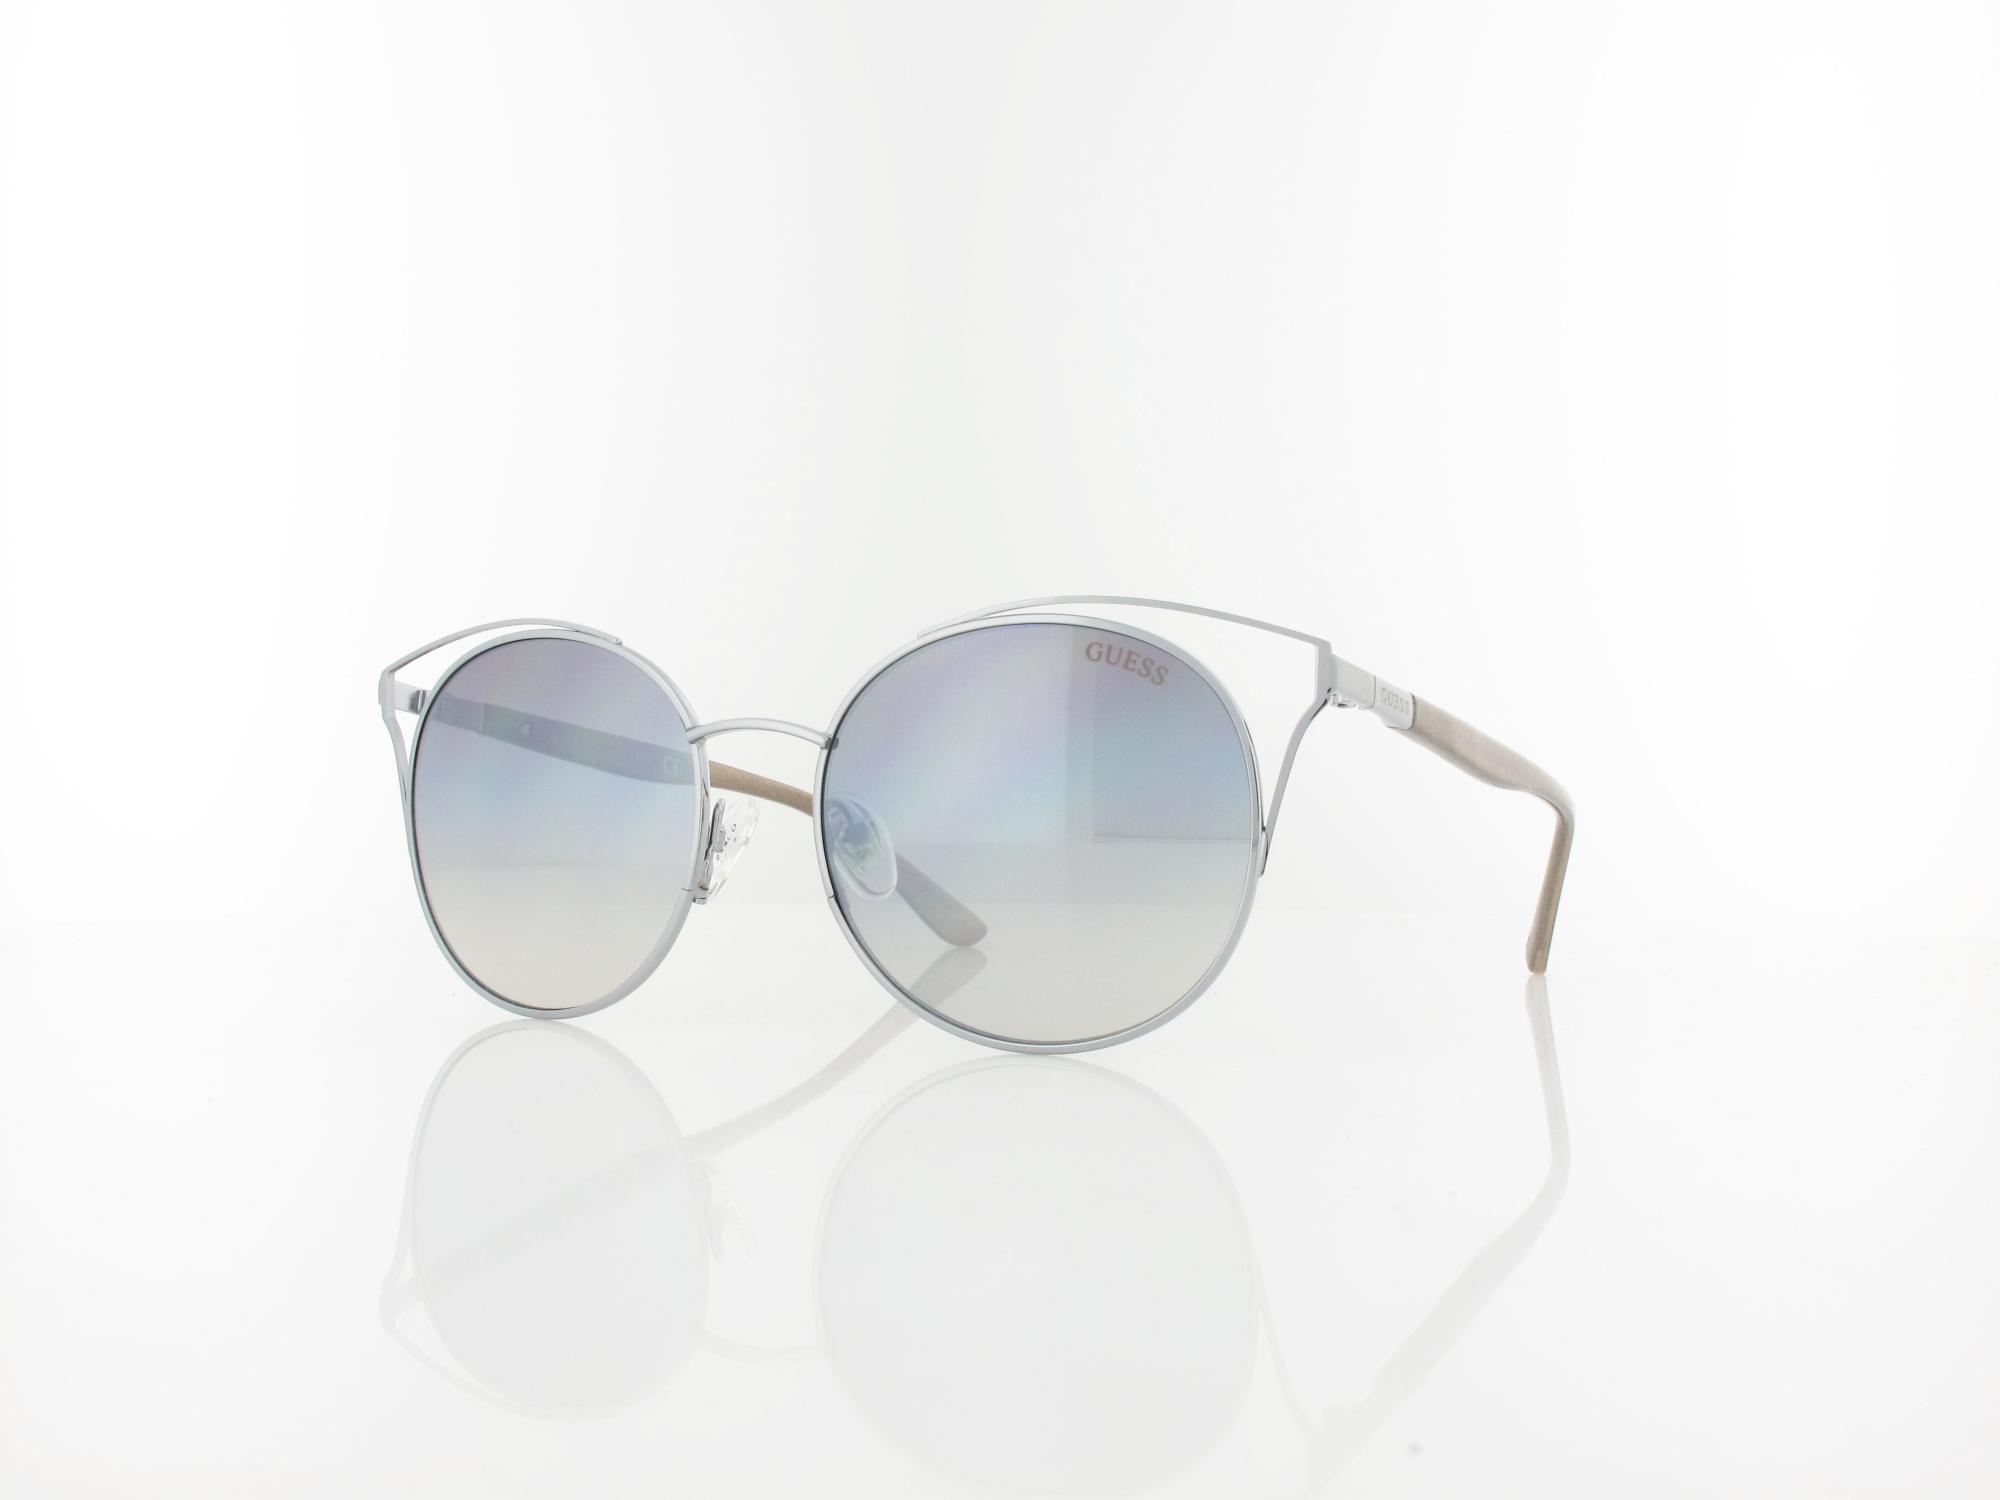 Guess | GU7574/S 08B 54 | shiny anthracite / grey gradient